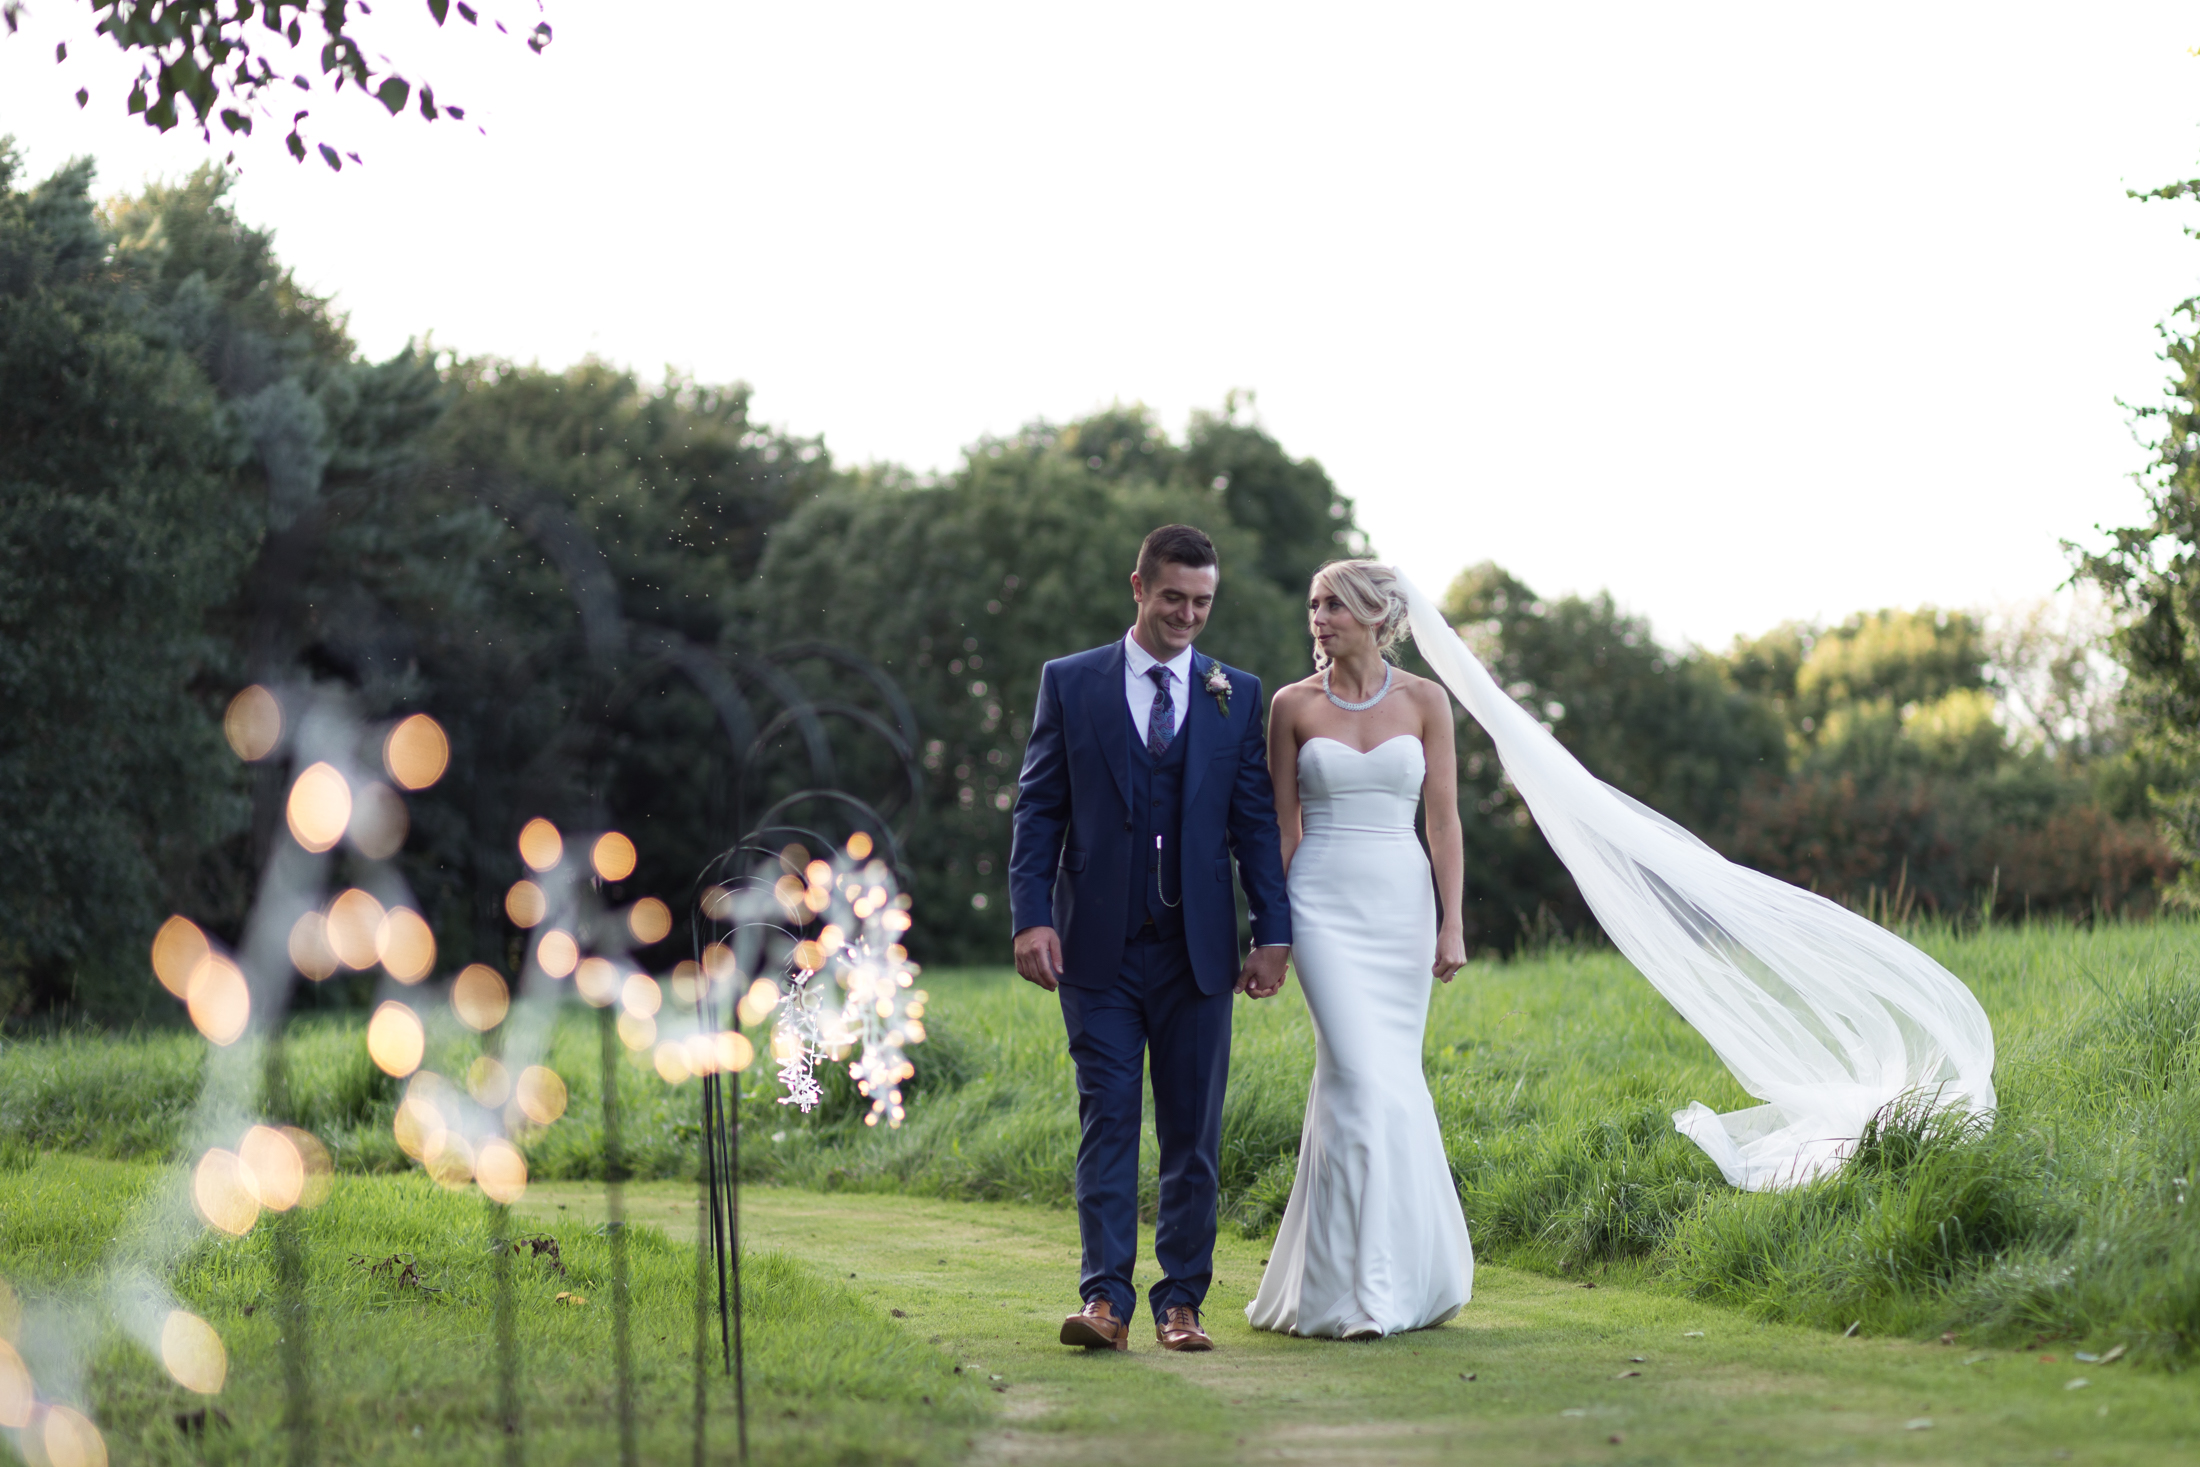 Goldsborough wedding Amanda Manby photography